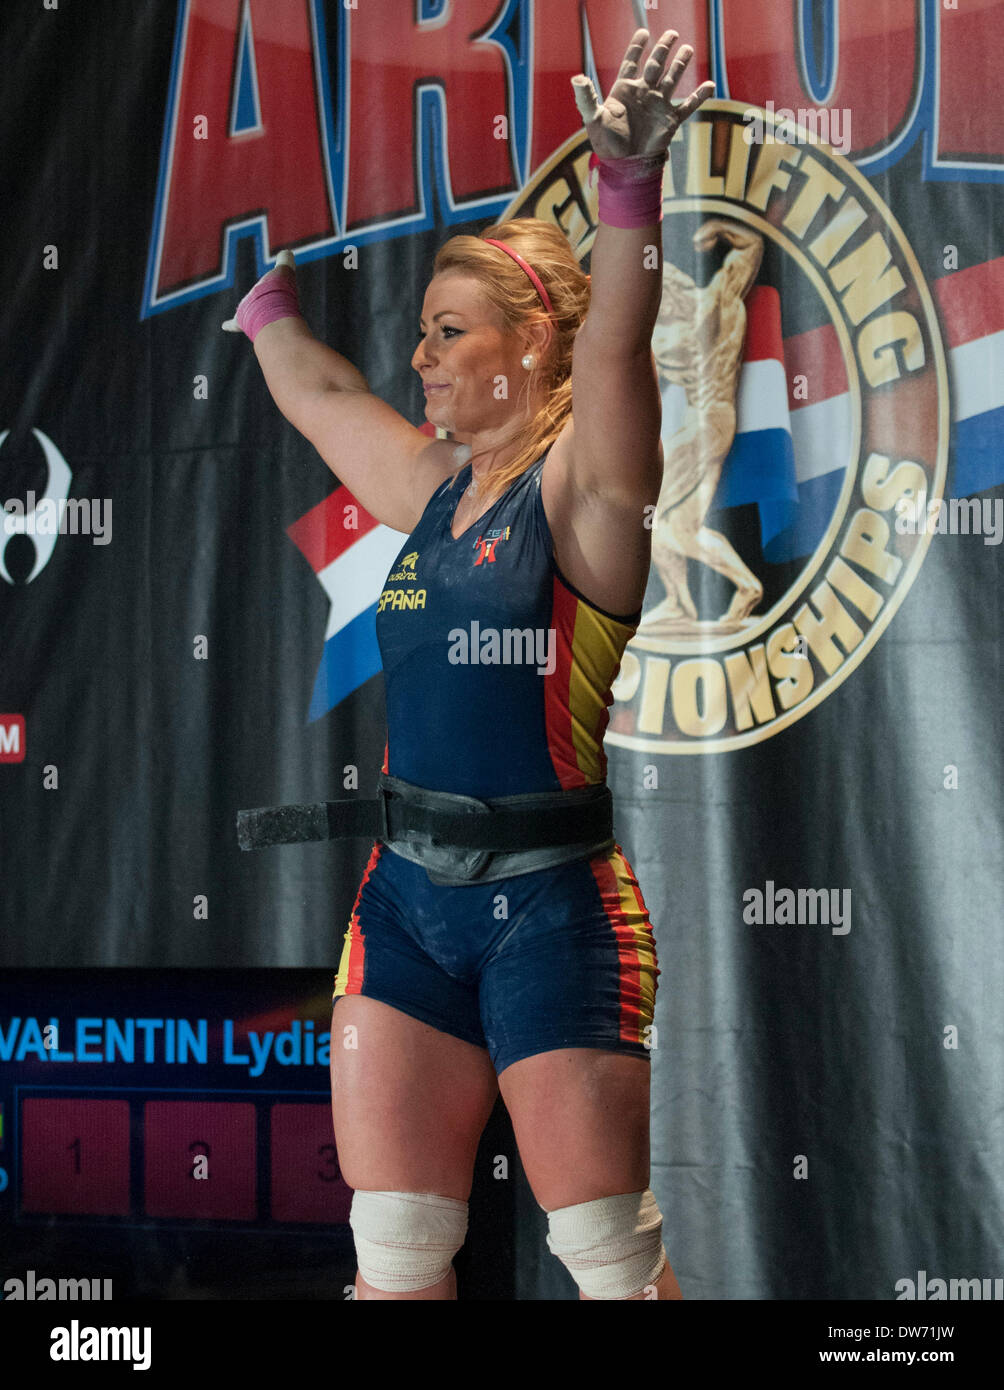 Schön Columbus, Ohio.1 March, 2014  Lydia Valentin Salutes Her Fans At The Arnold  Weightlifting Championships. Credit: Brent Clark/Alamy Live News